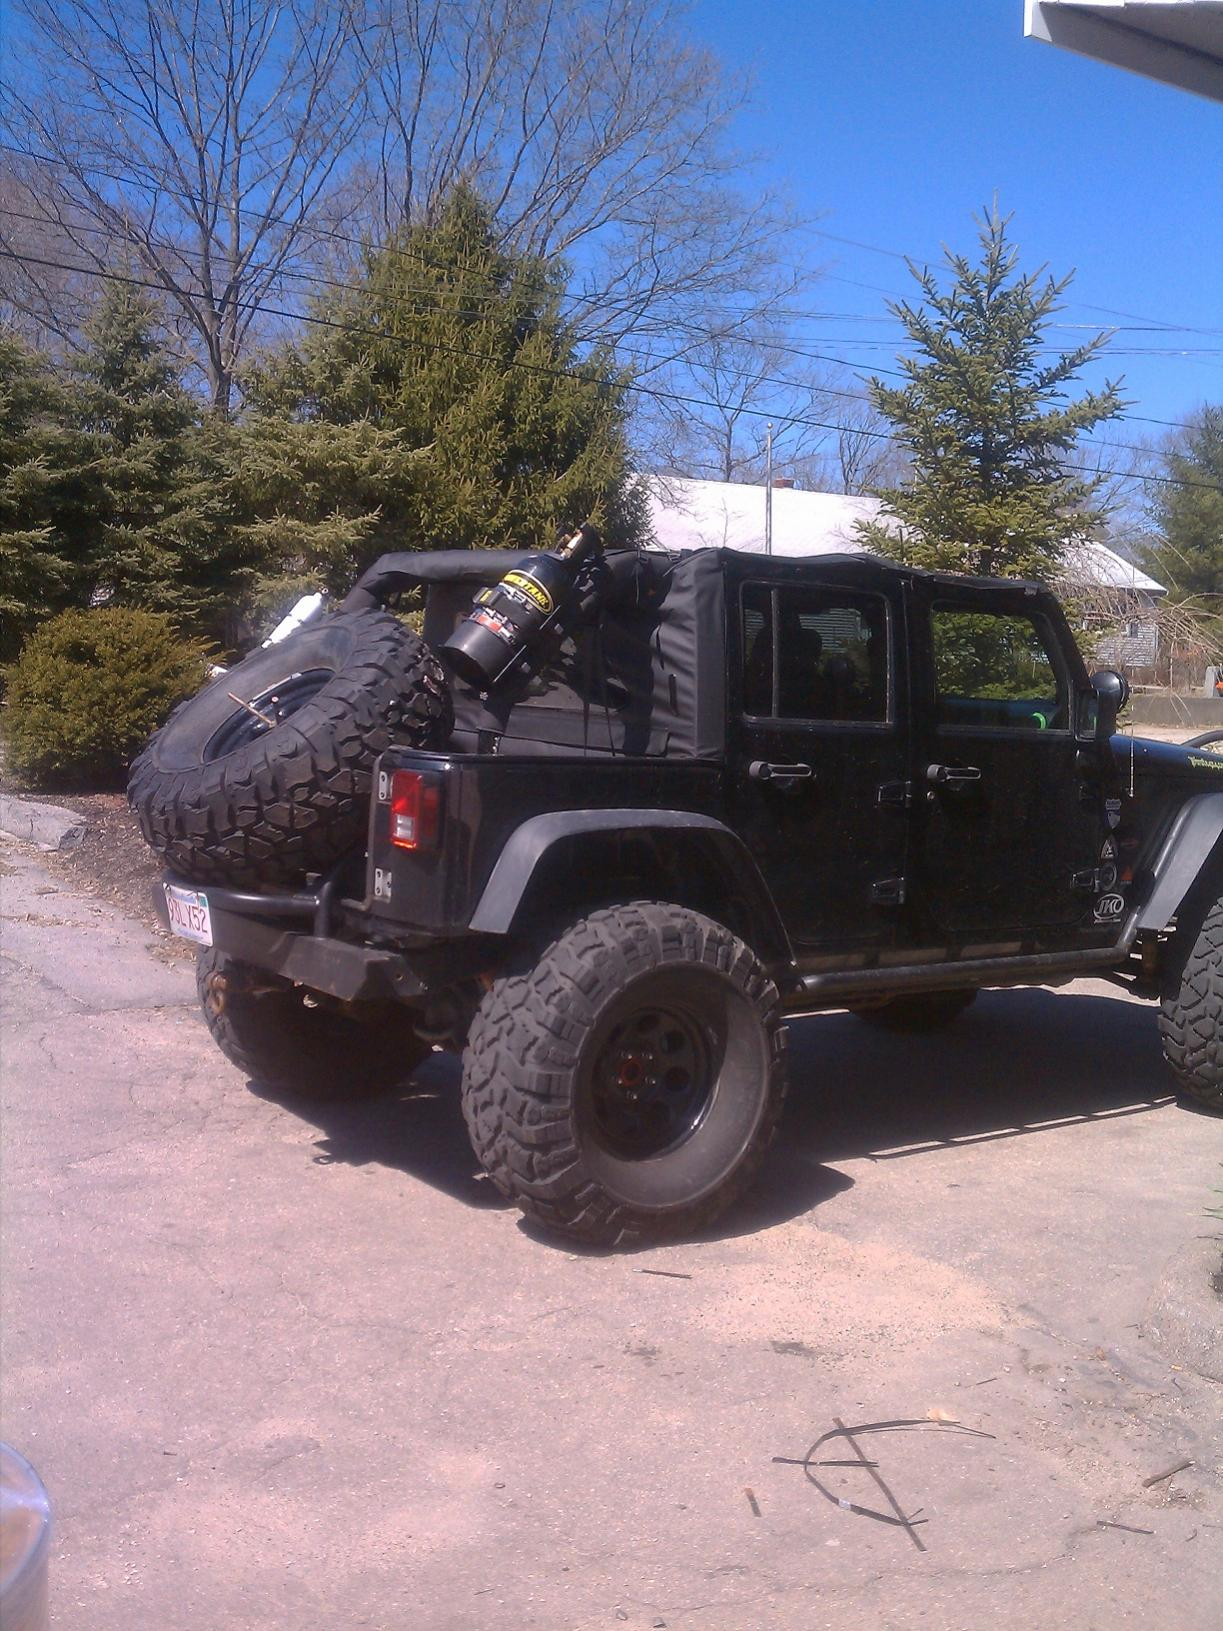 bikini top and deck covers - page 2 - jkowners : jeep